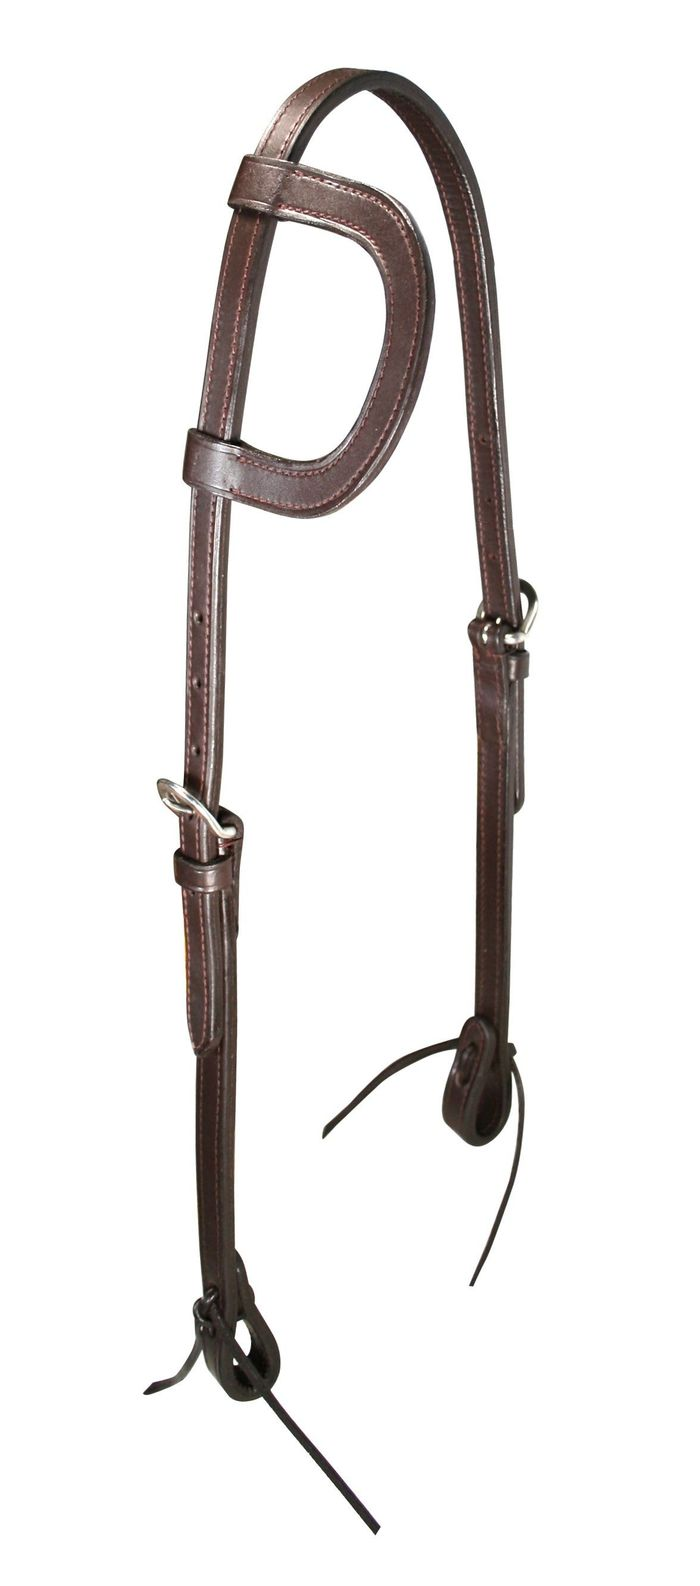 Premium double layer leather headstalls / headstall